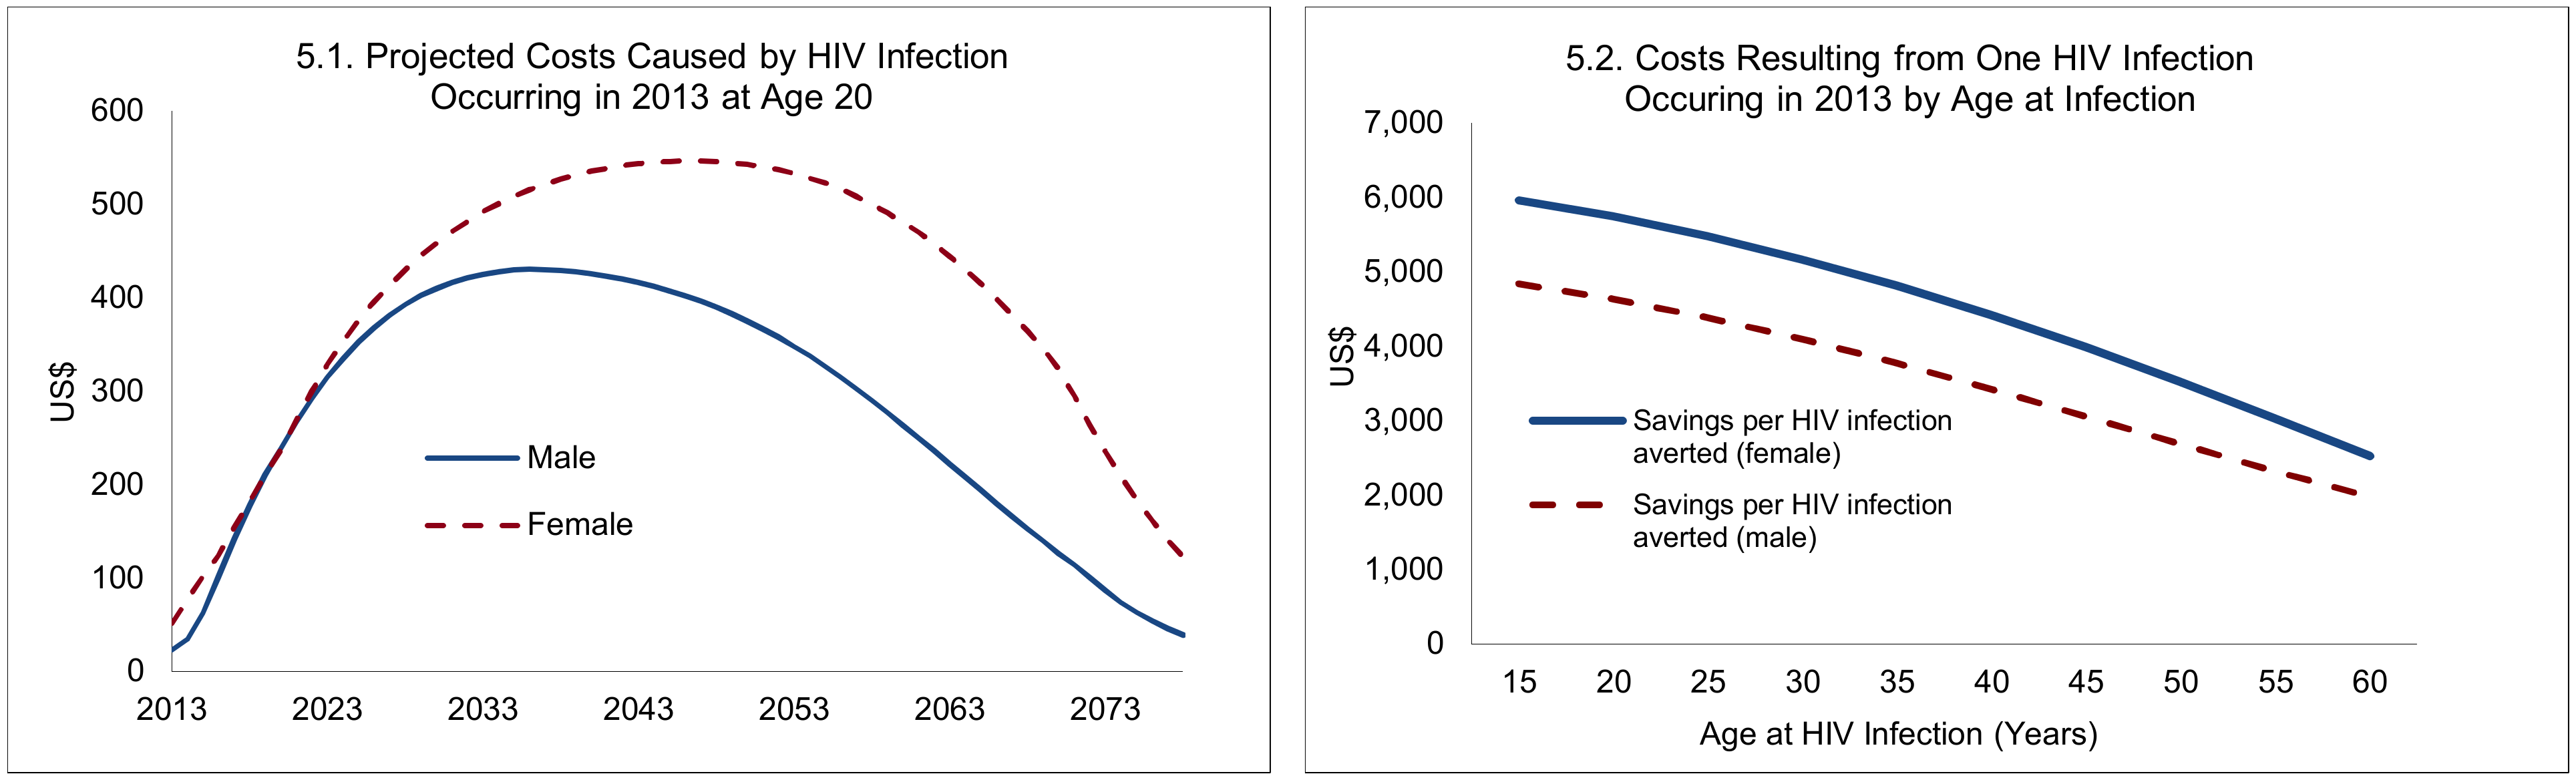 Projected costs caused by one new HIV infection, 2013.